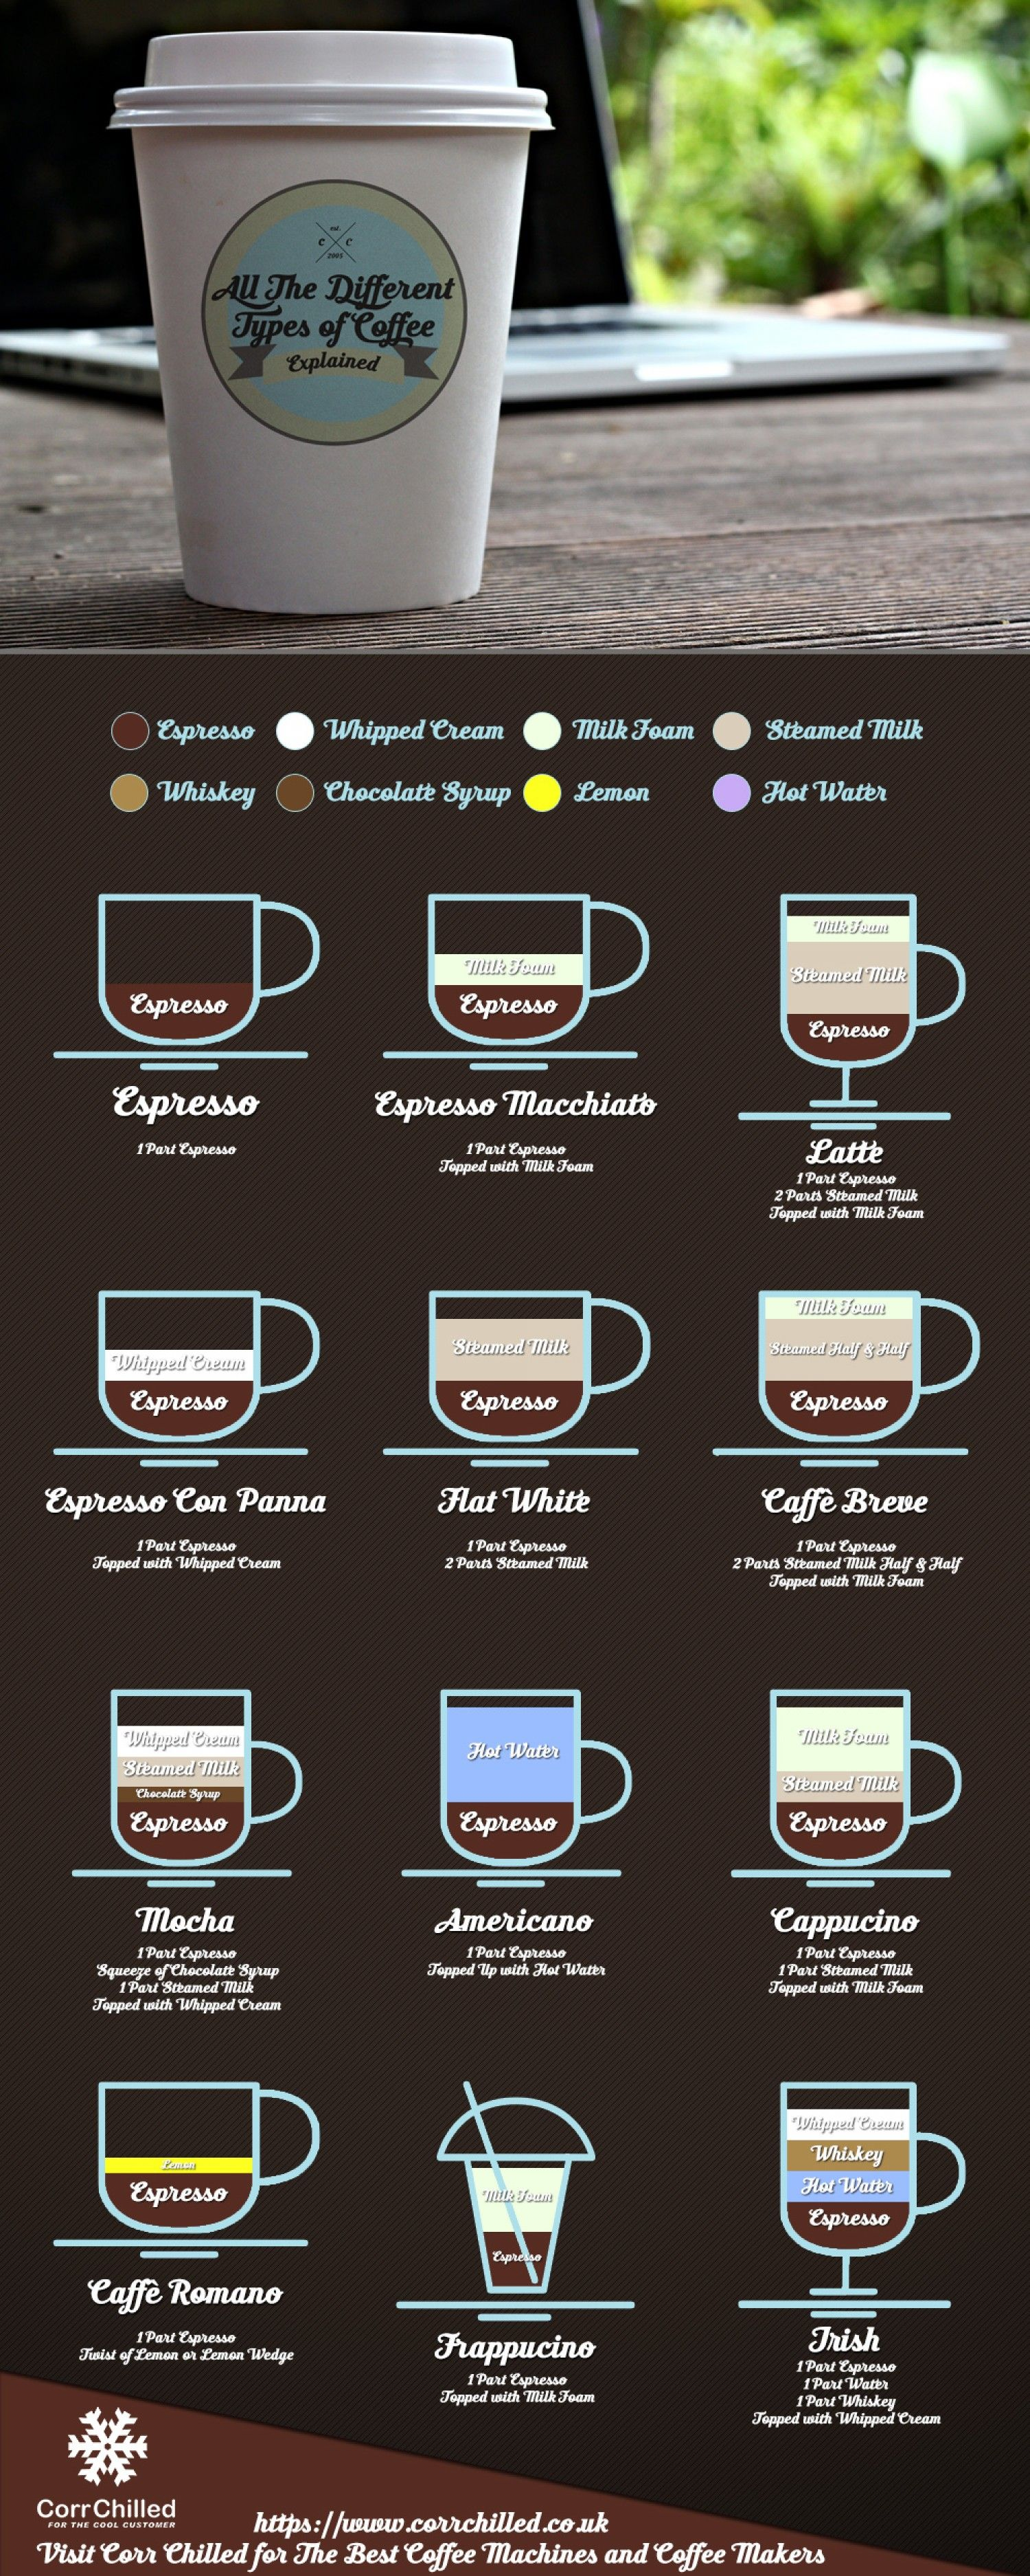 All The Different Types Of Coffee Explained Visual Ly Coffee Type Different Types Of Coffee Coffee Infographic